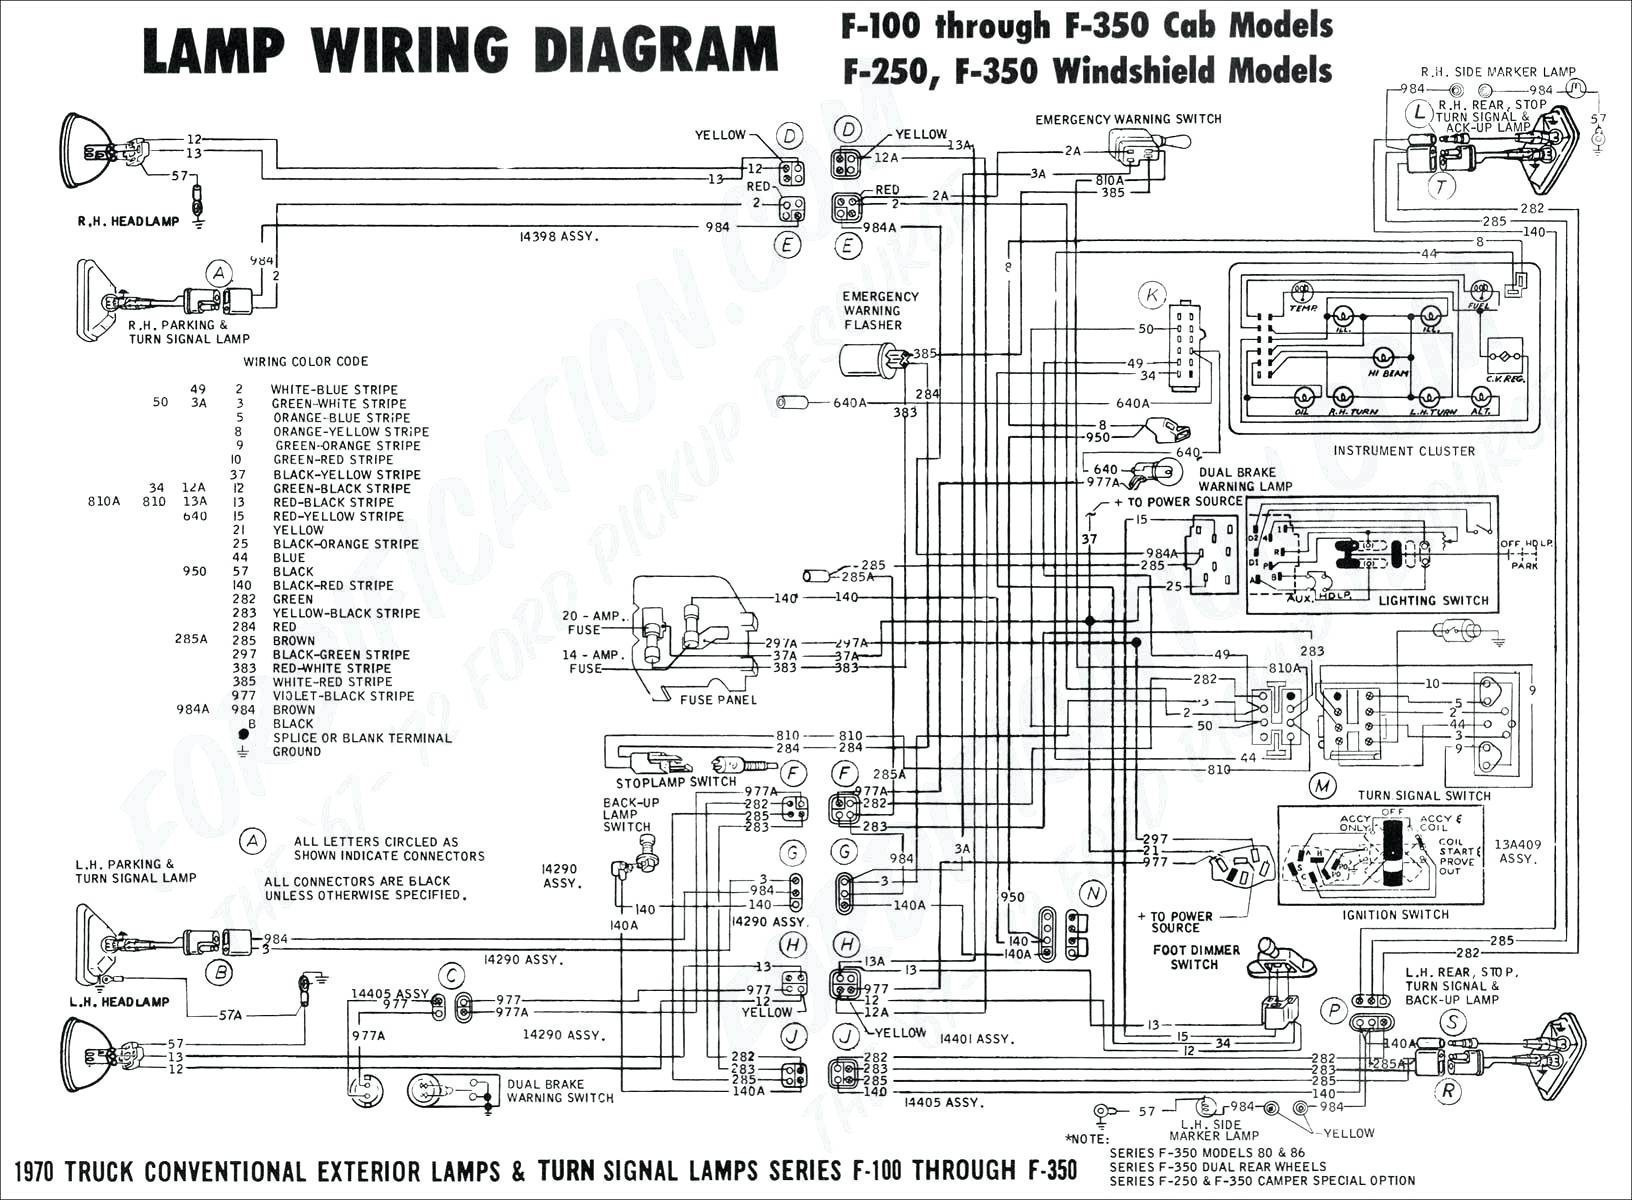 1995 toyota Camry Engine Diagram 8c568c for A 2000 Eclipse Fuse Diagram Of 1995 toyota Camry Engine Diagram